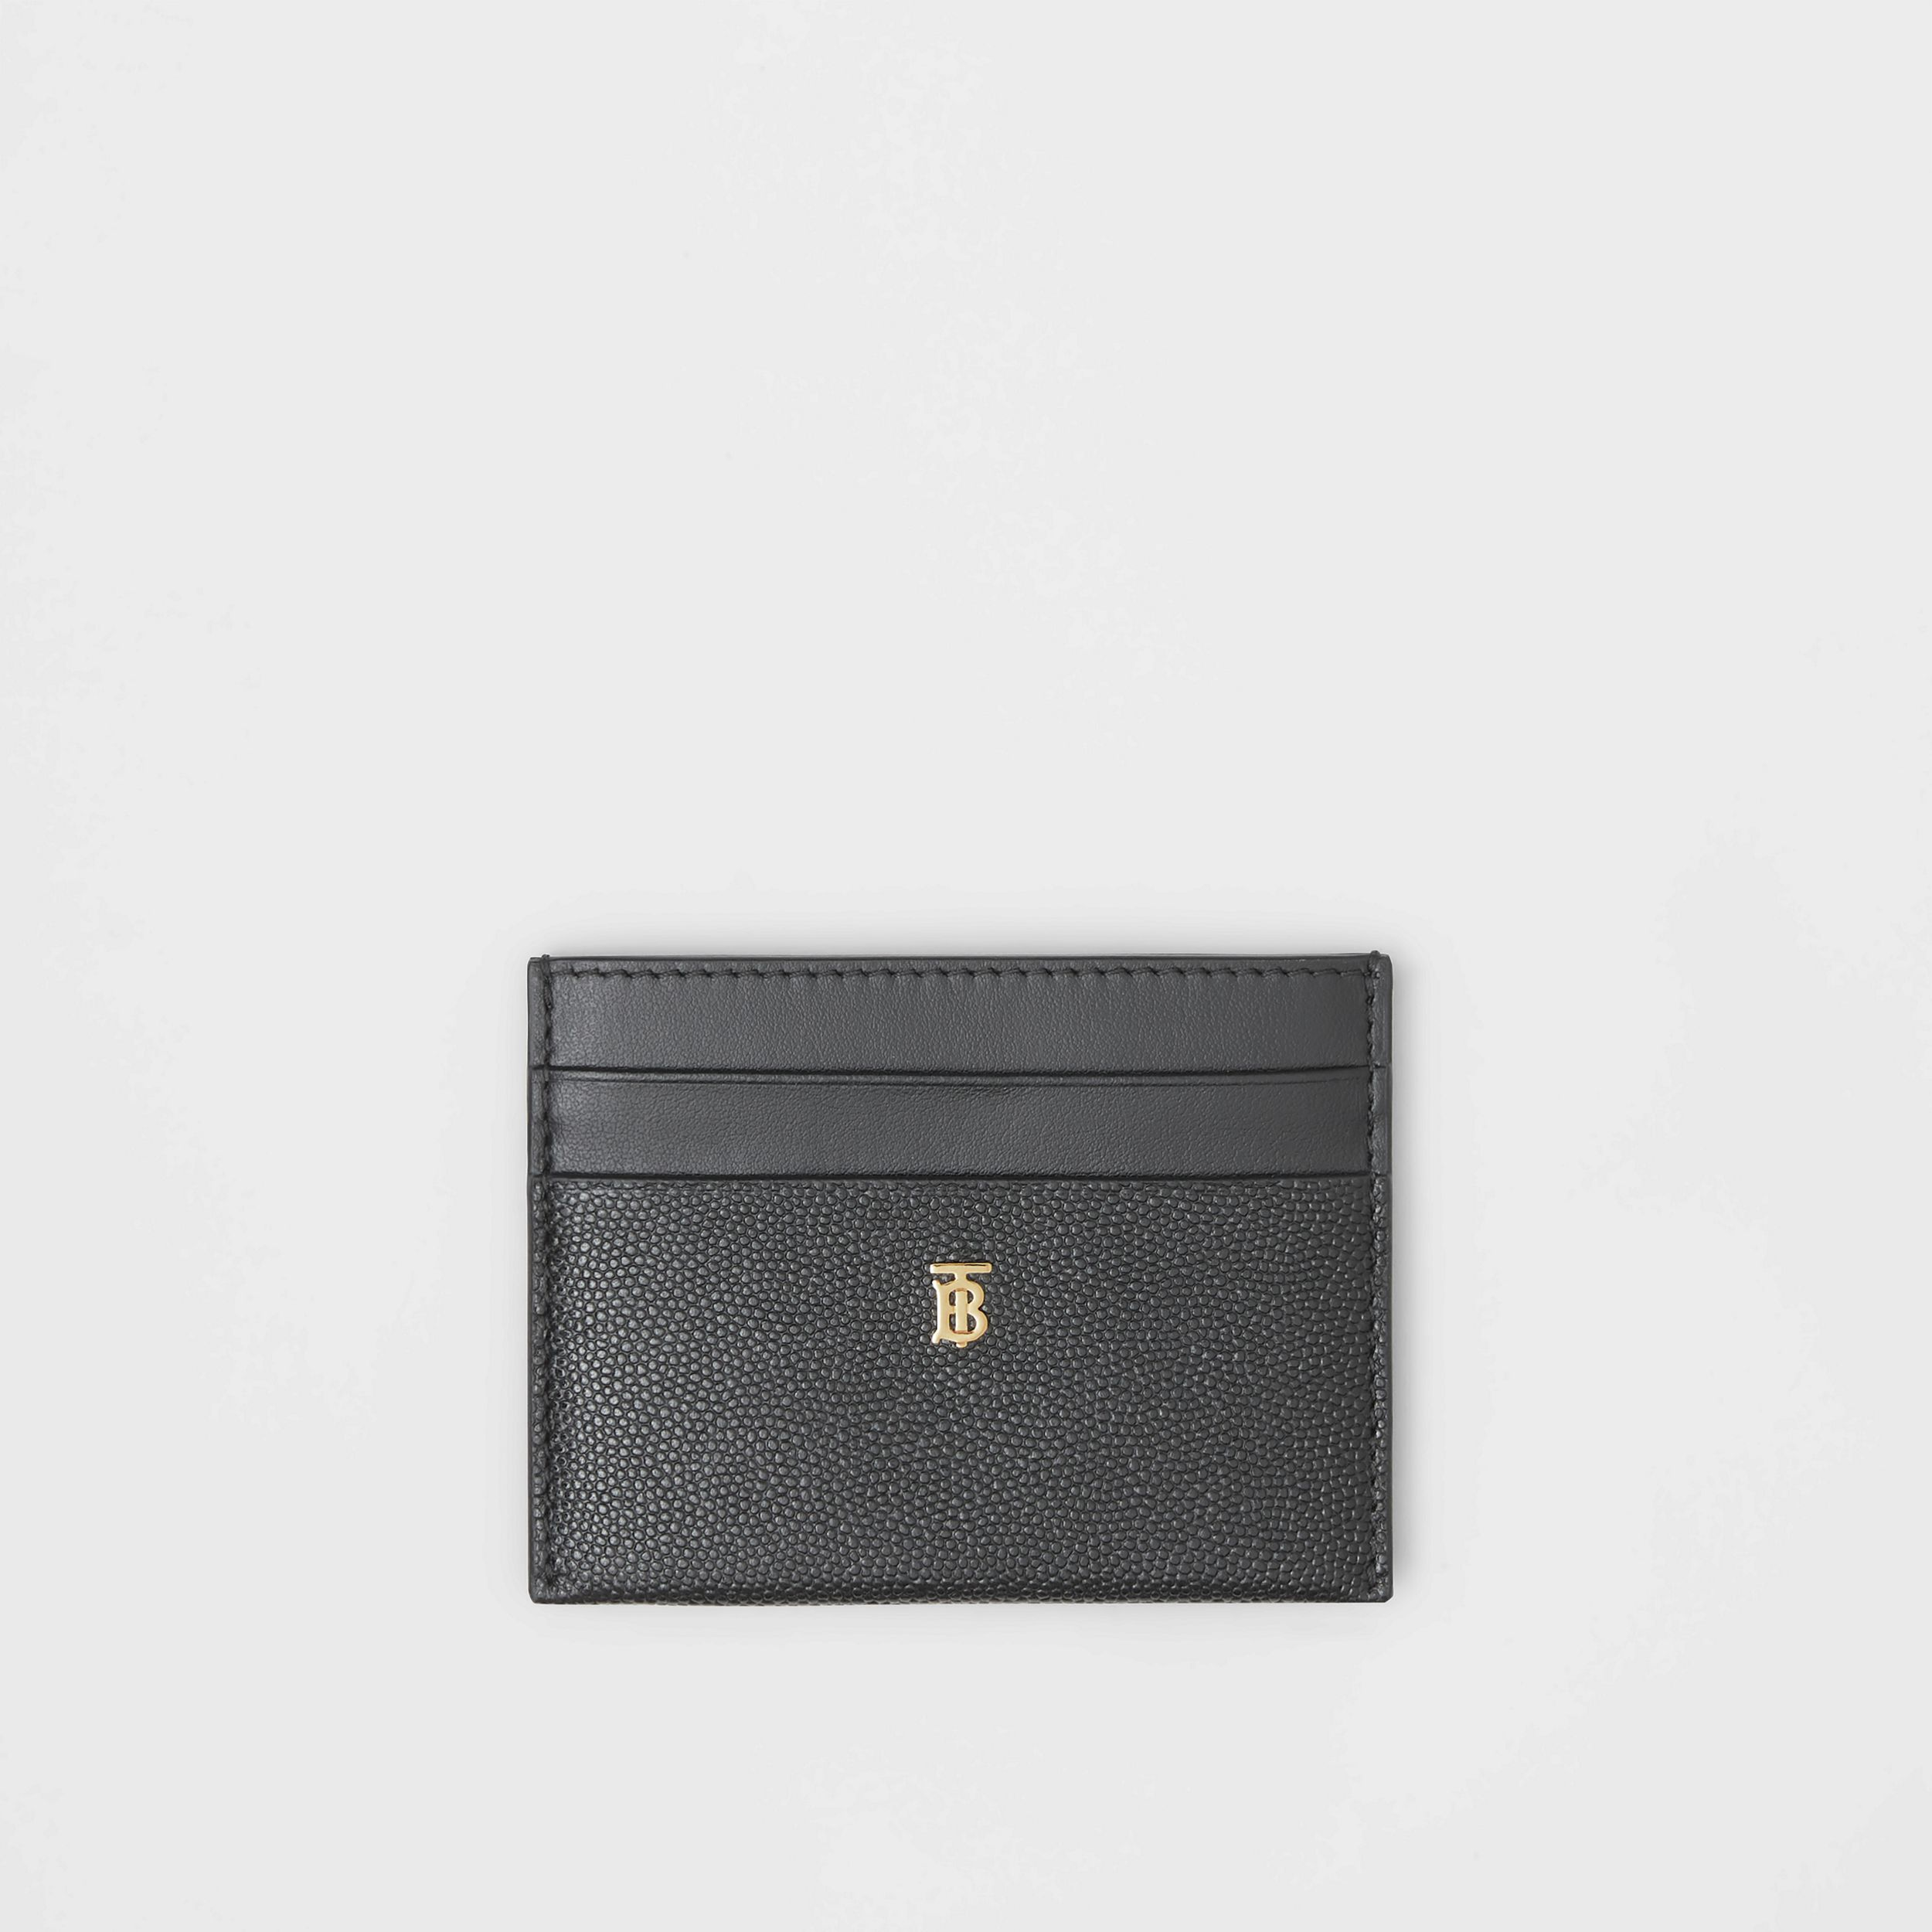 Monogram Motif Leather Card Case in Black - Women | Burberry - 1